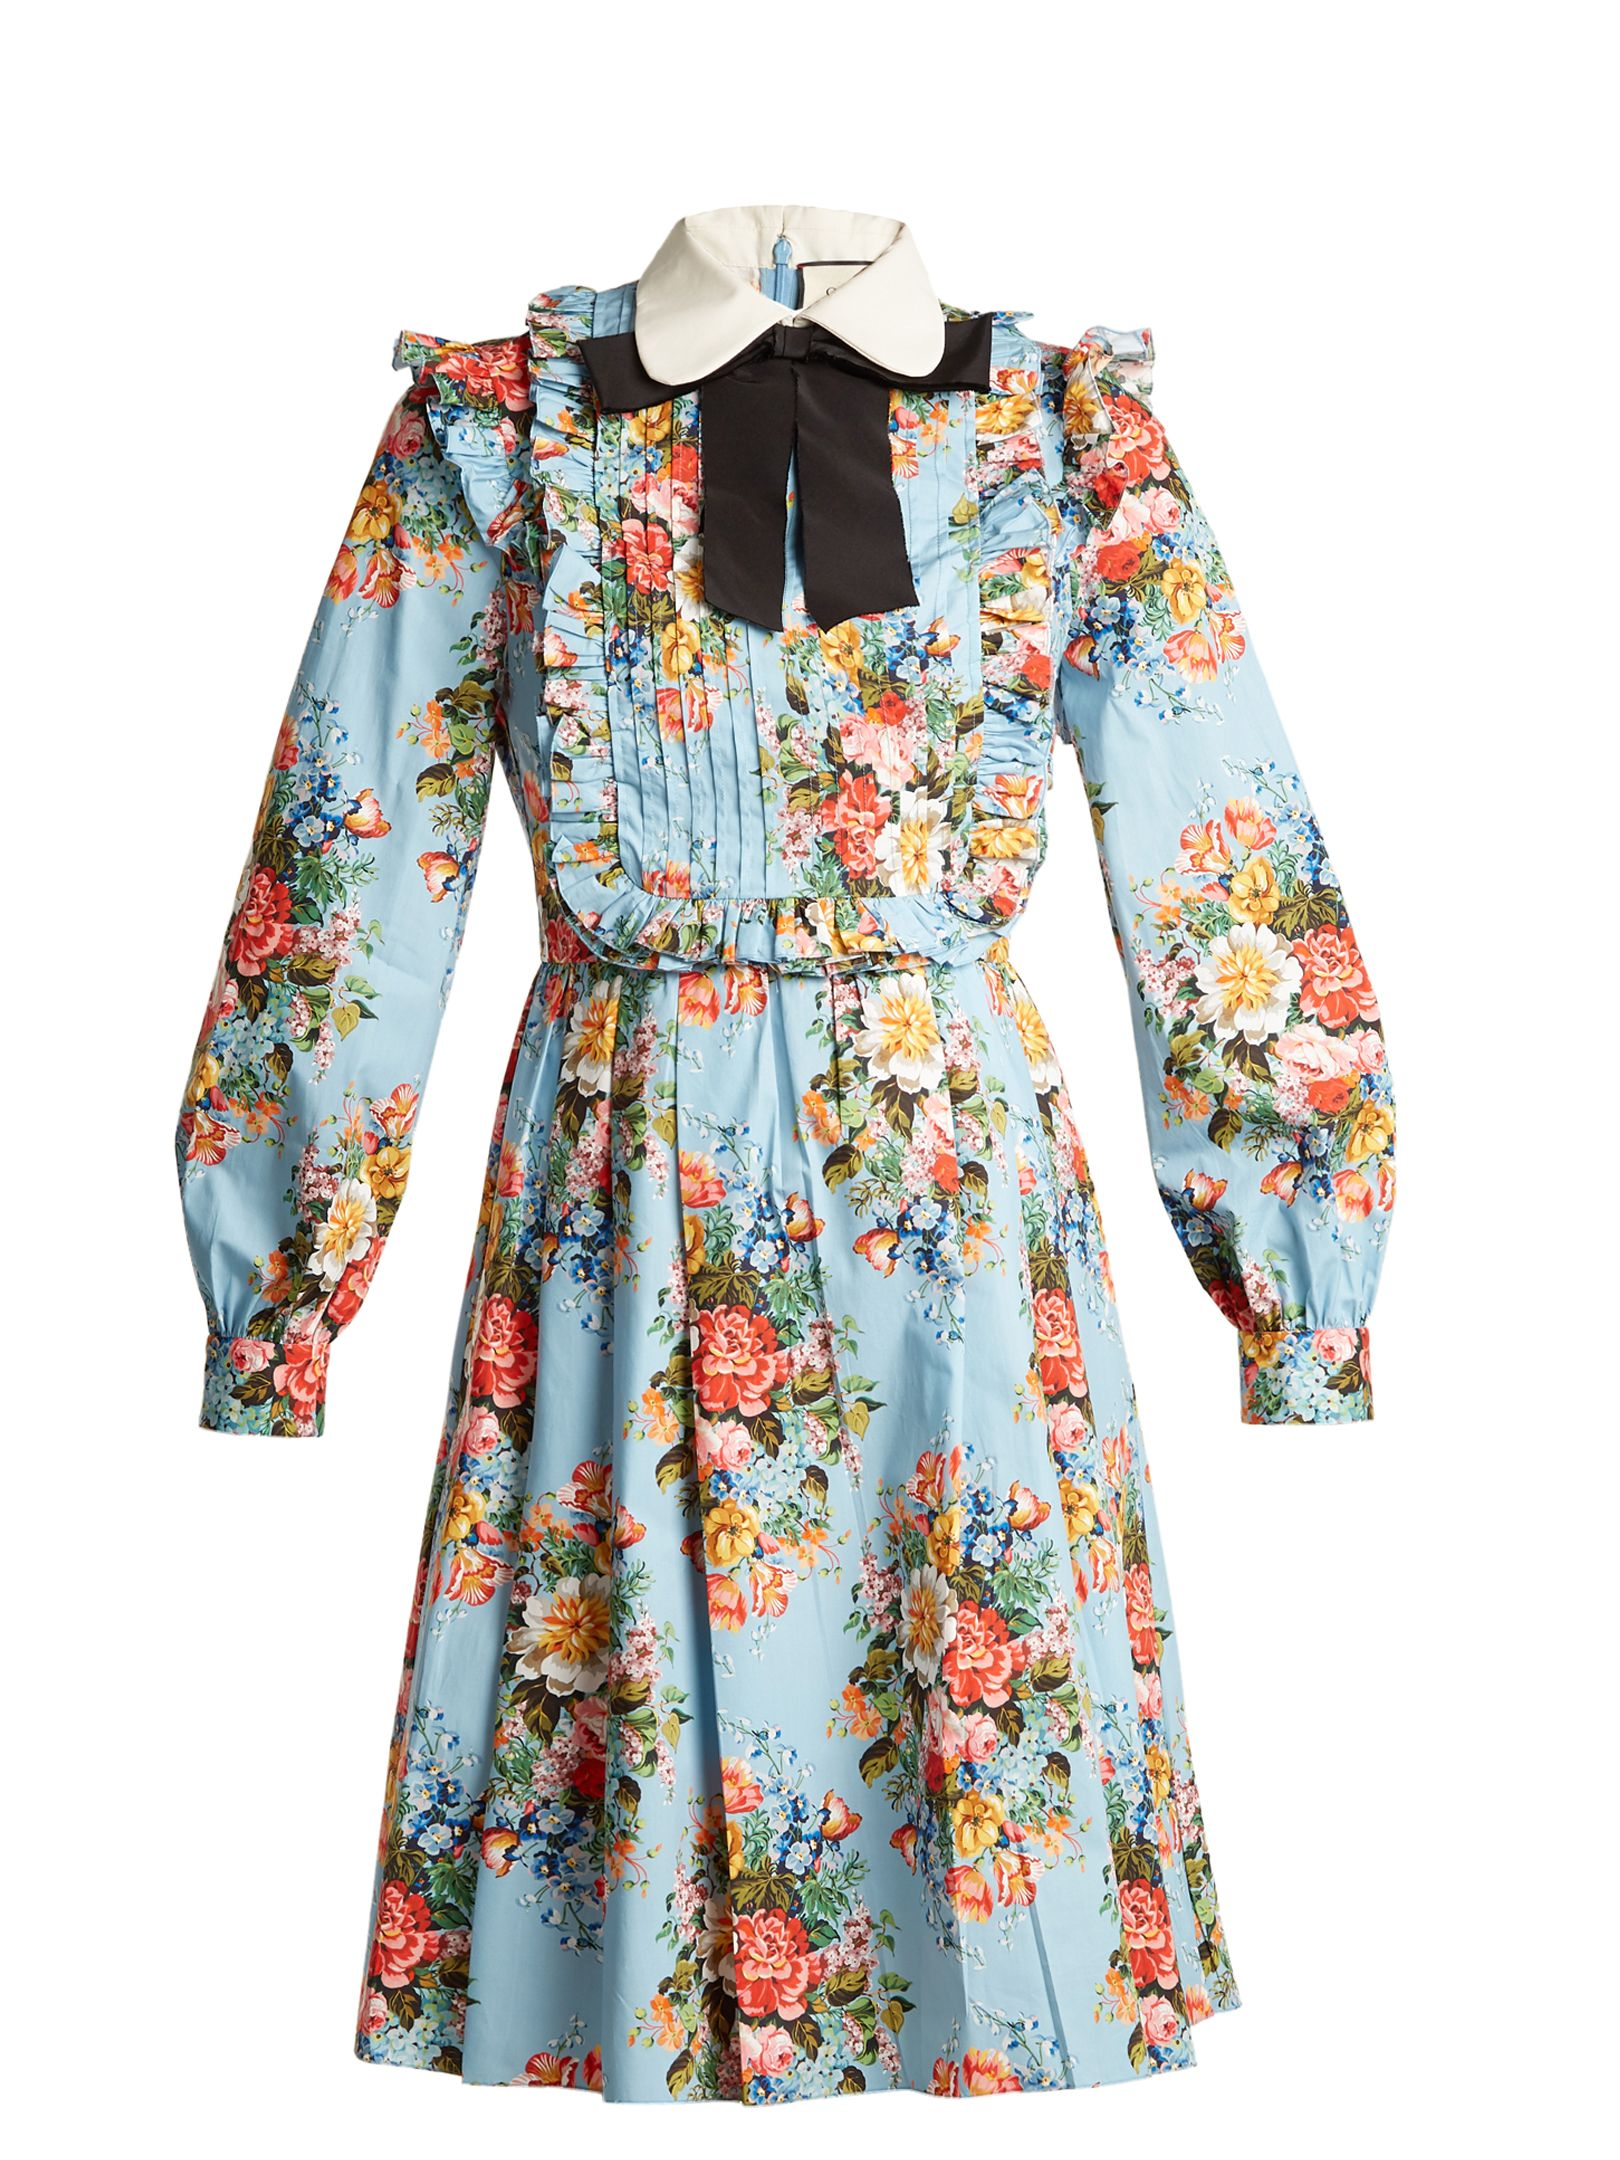 c8f8b5ead09 Josephine-print cotton-blend dress | dress | Gucci dress, Fashion ...